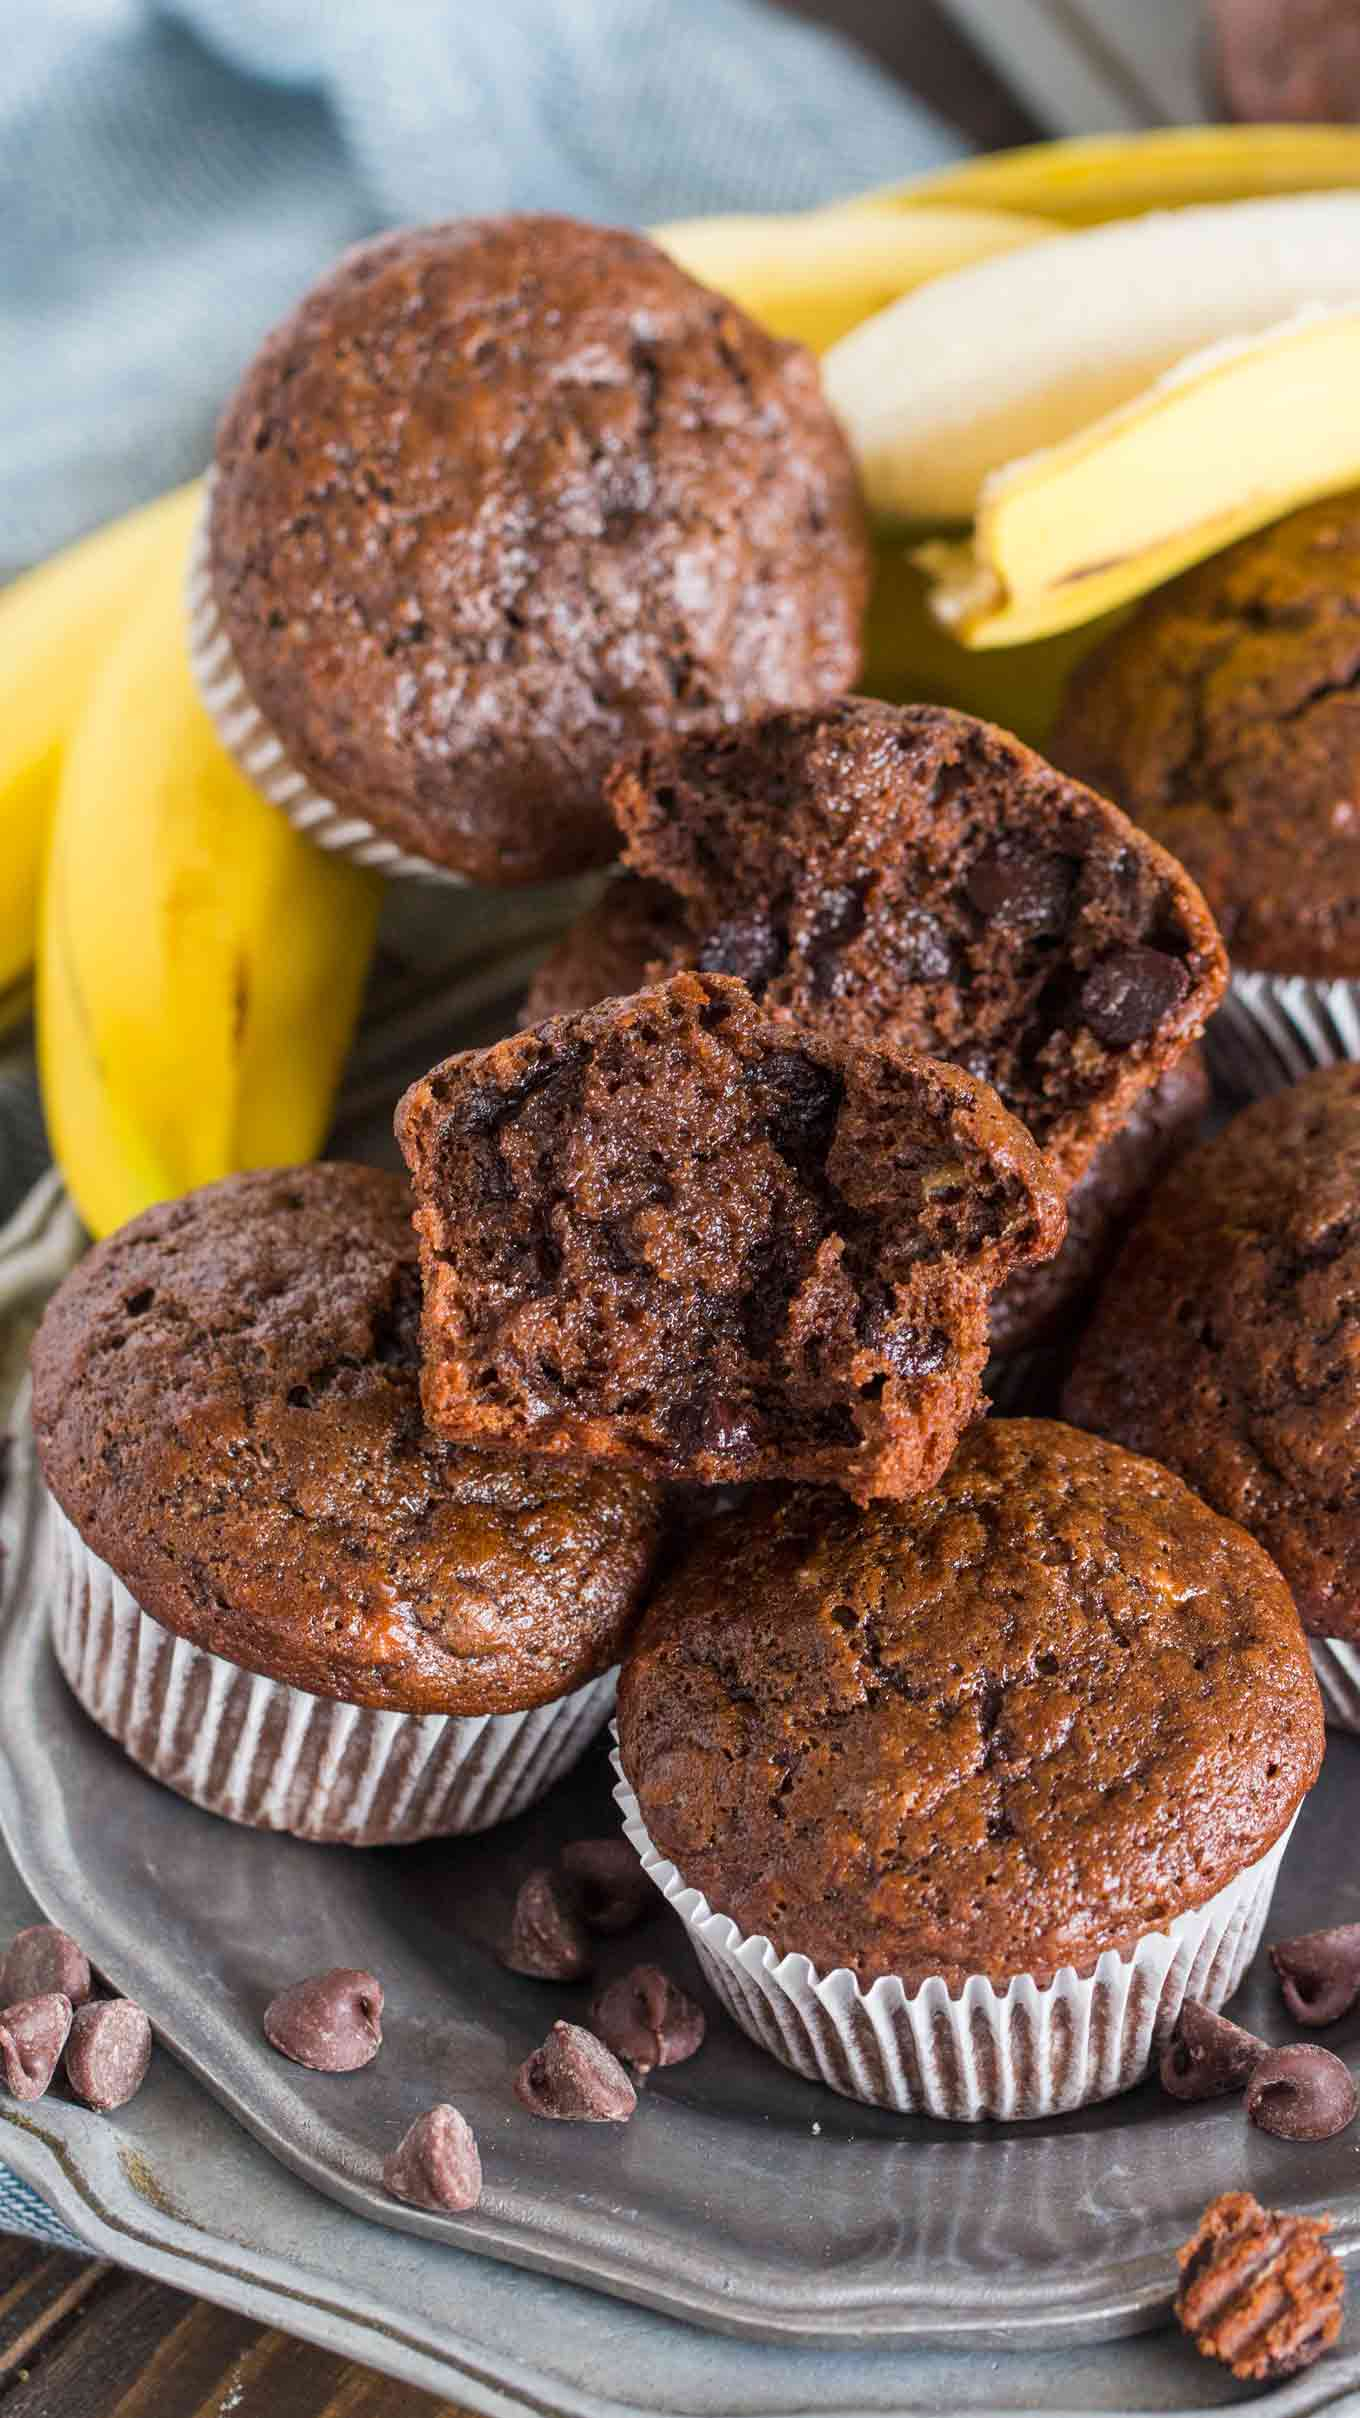 Best Chocolate Banana Muffins Video Sweet And Savory Meals